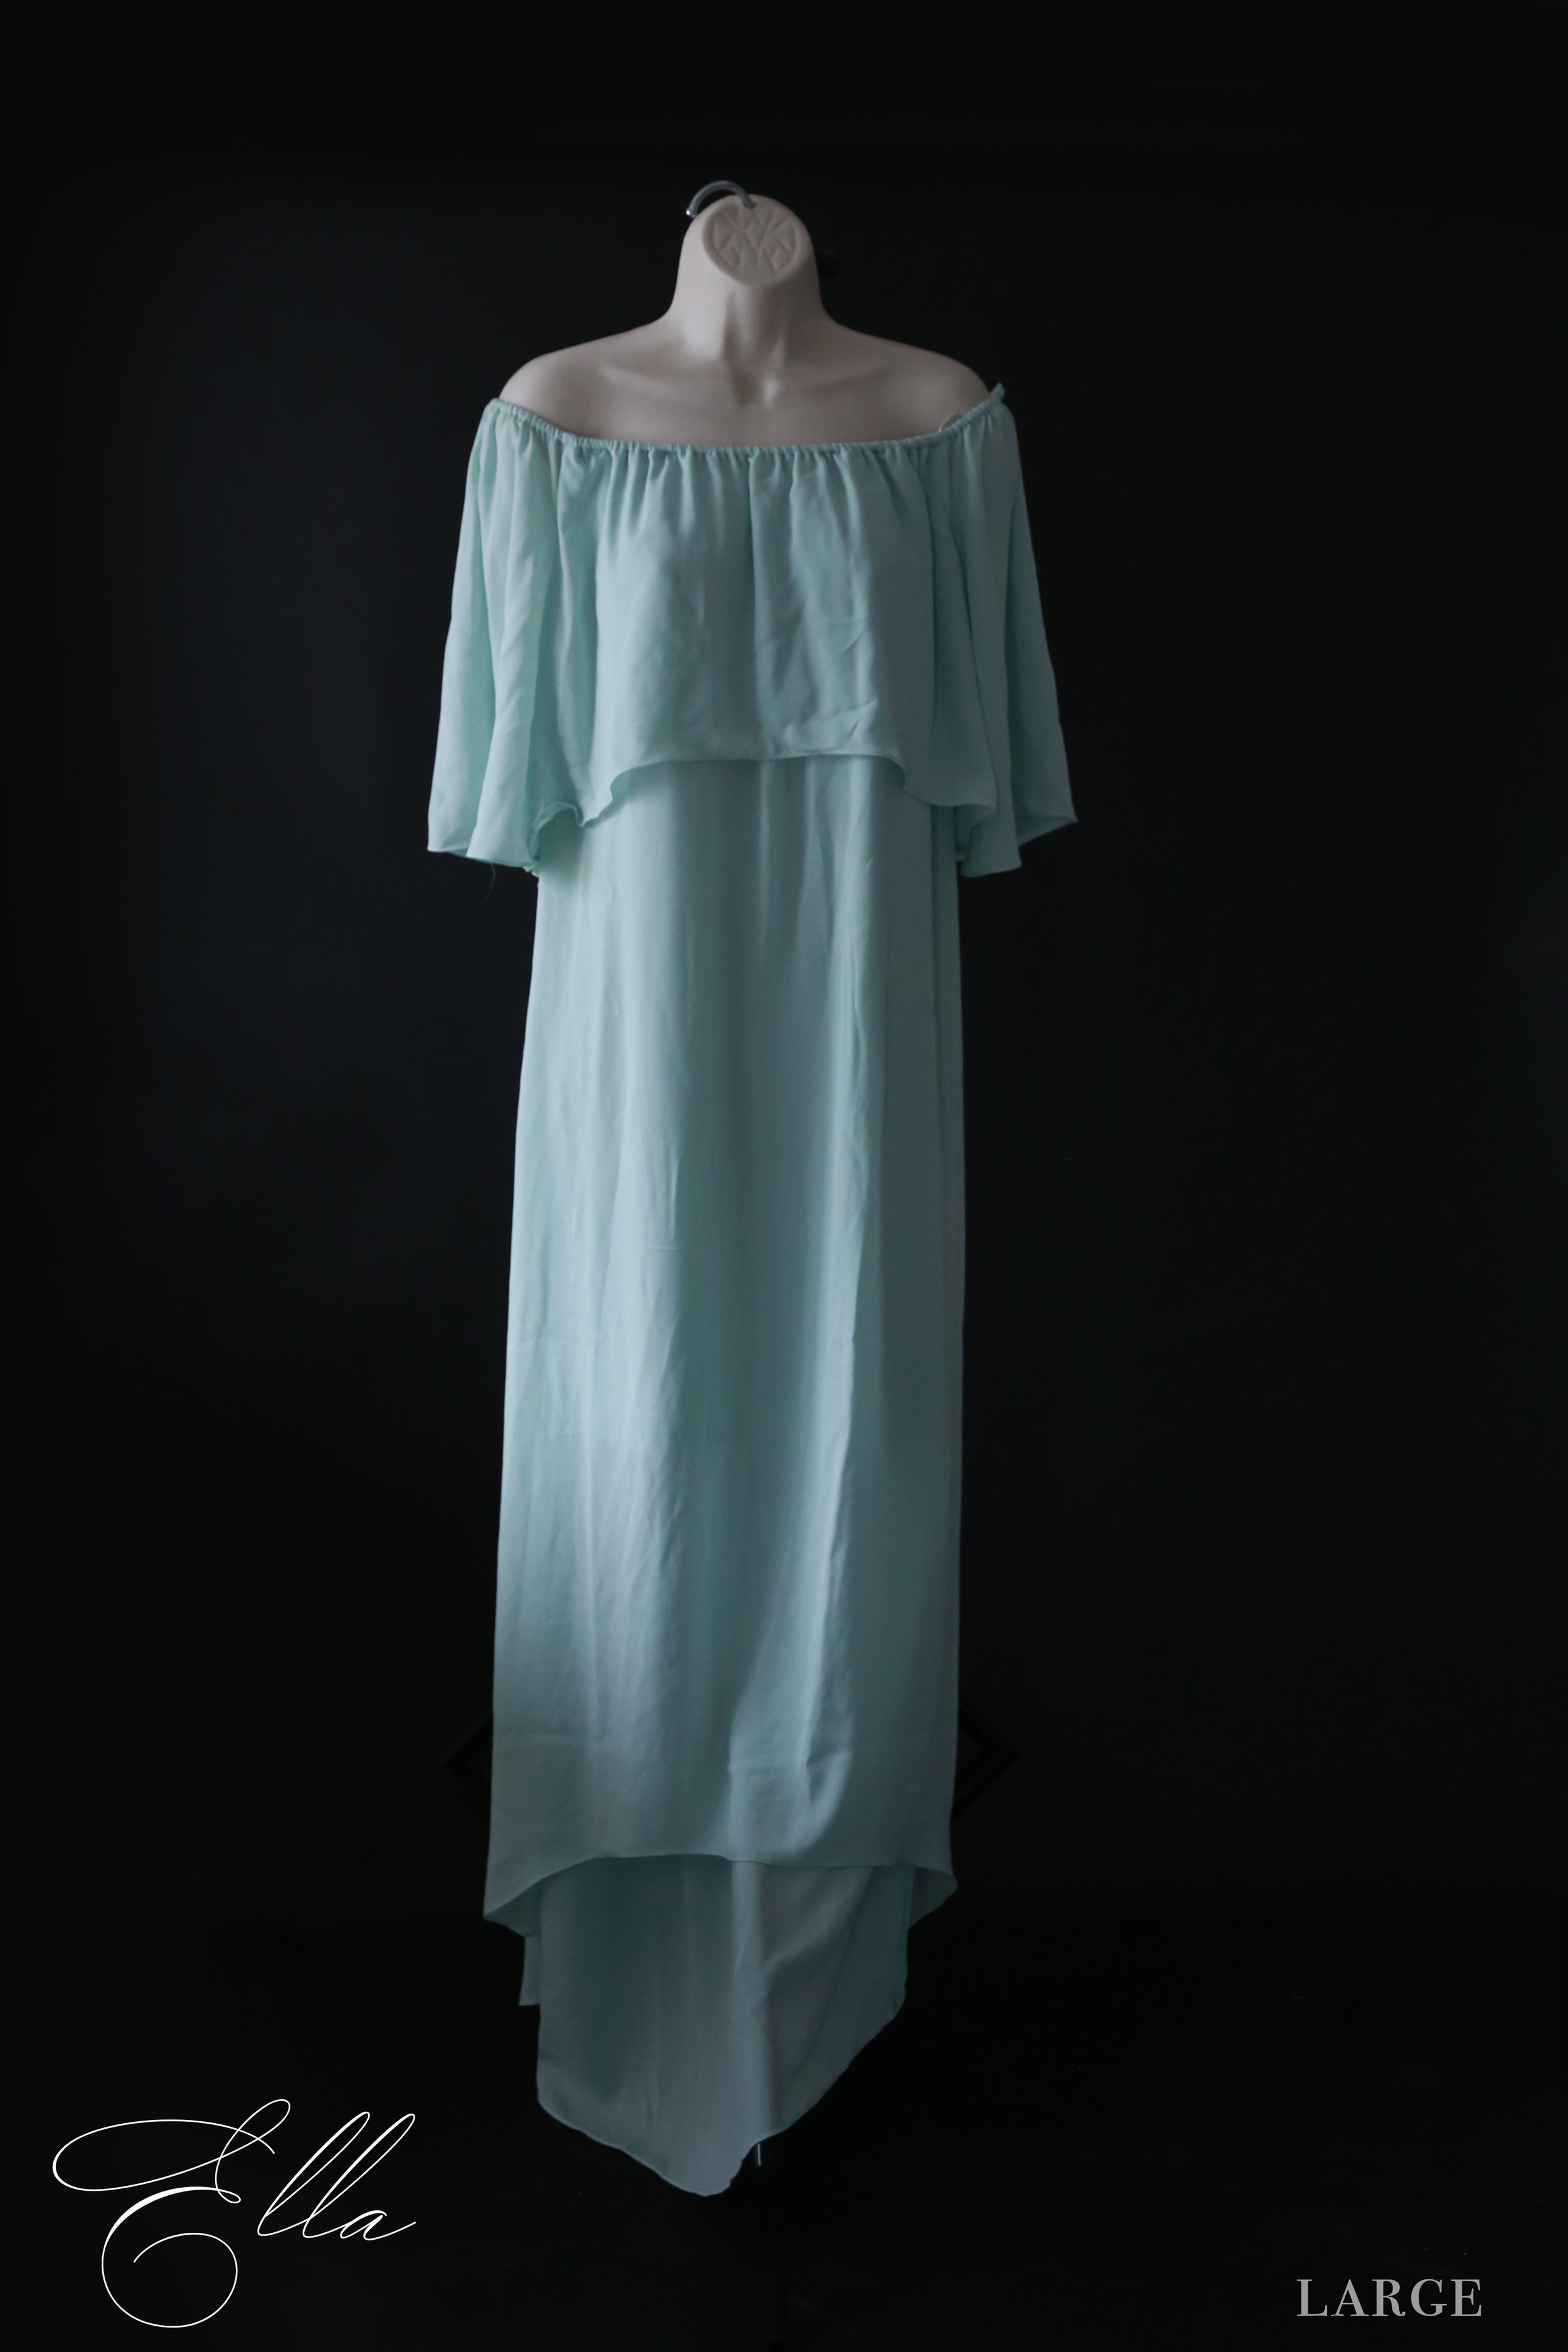 Ella - LargeLoose, flowy fit. Great for maternity, new mom, or just any mom wanting a a loose and carefree feel.